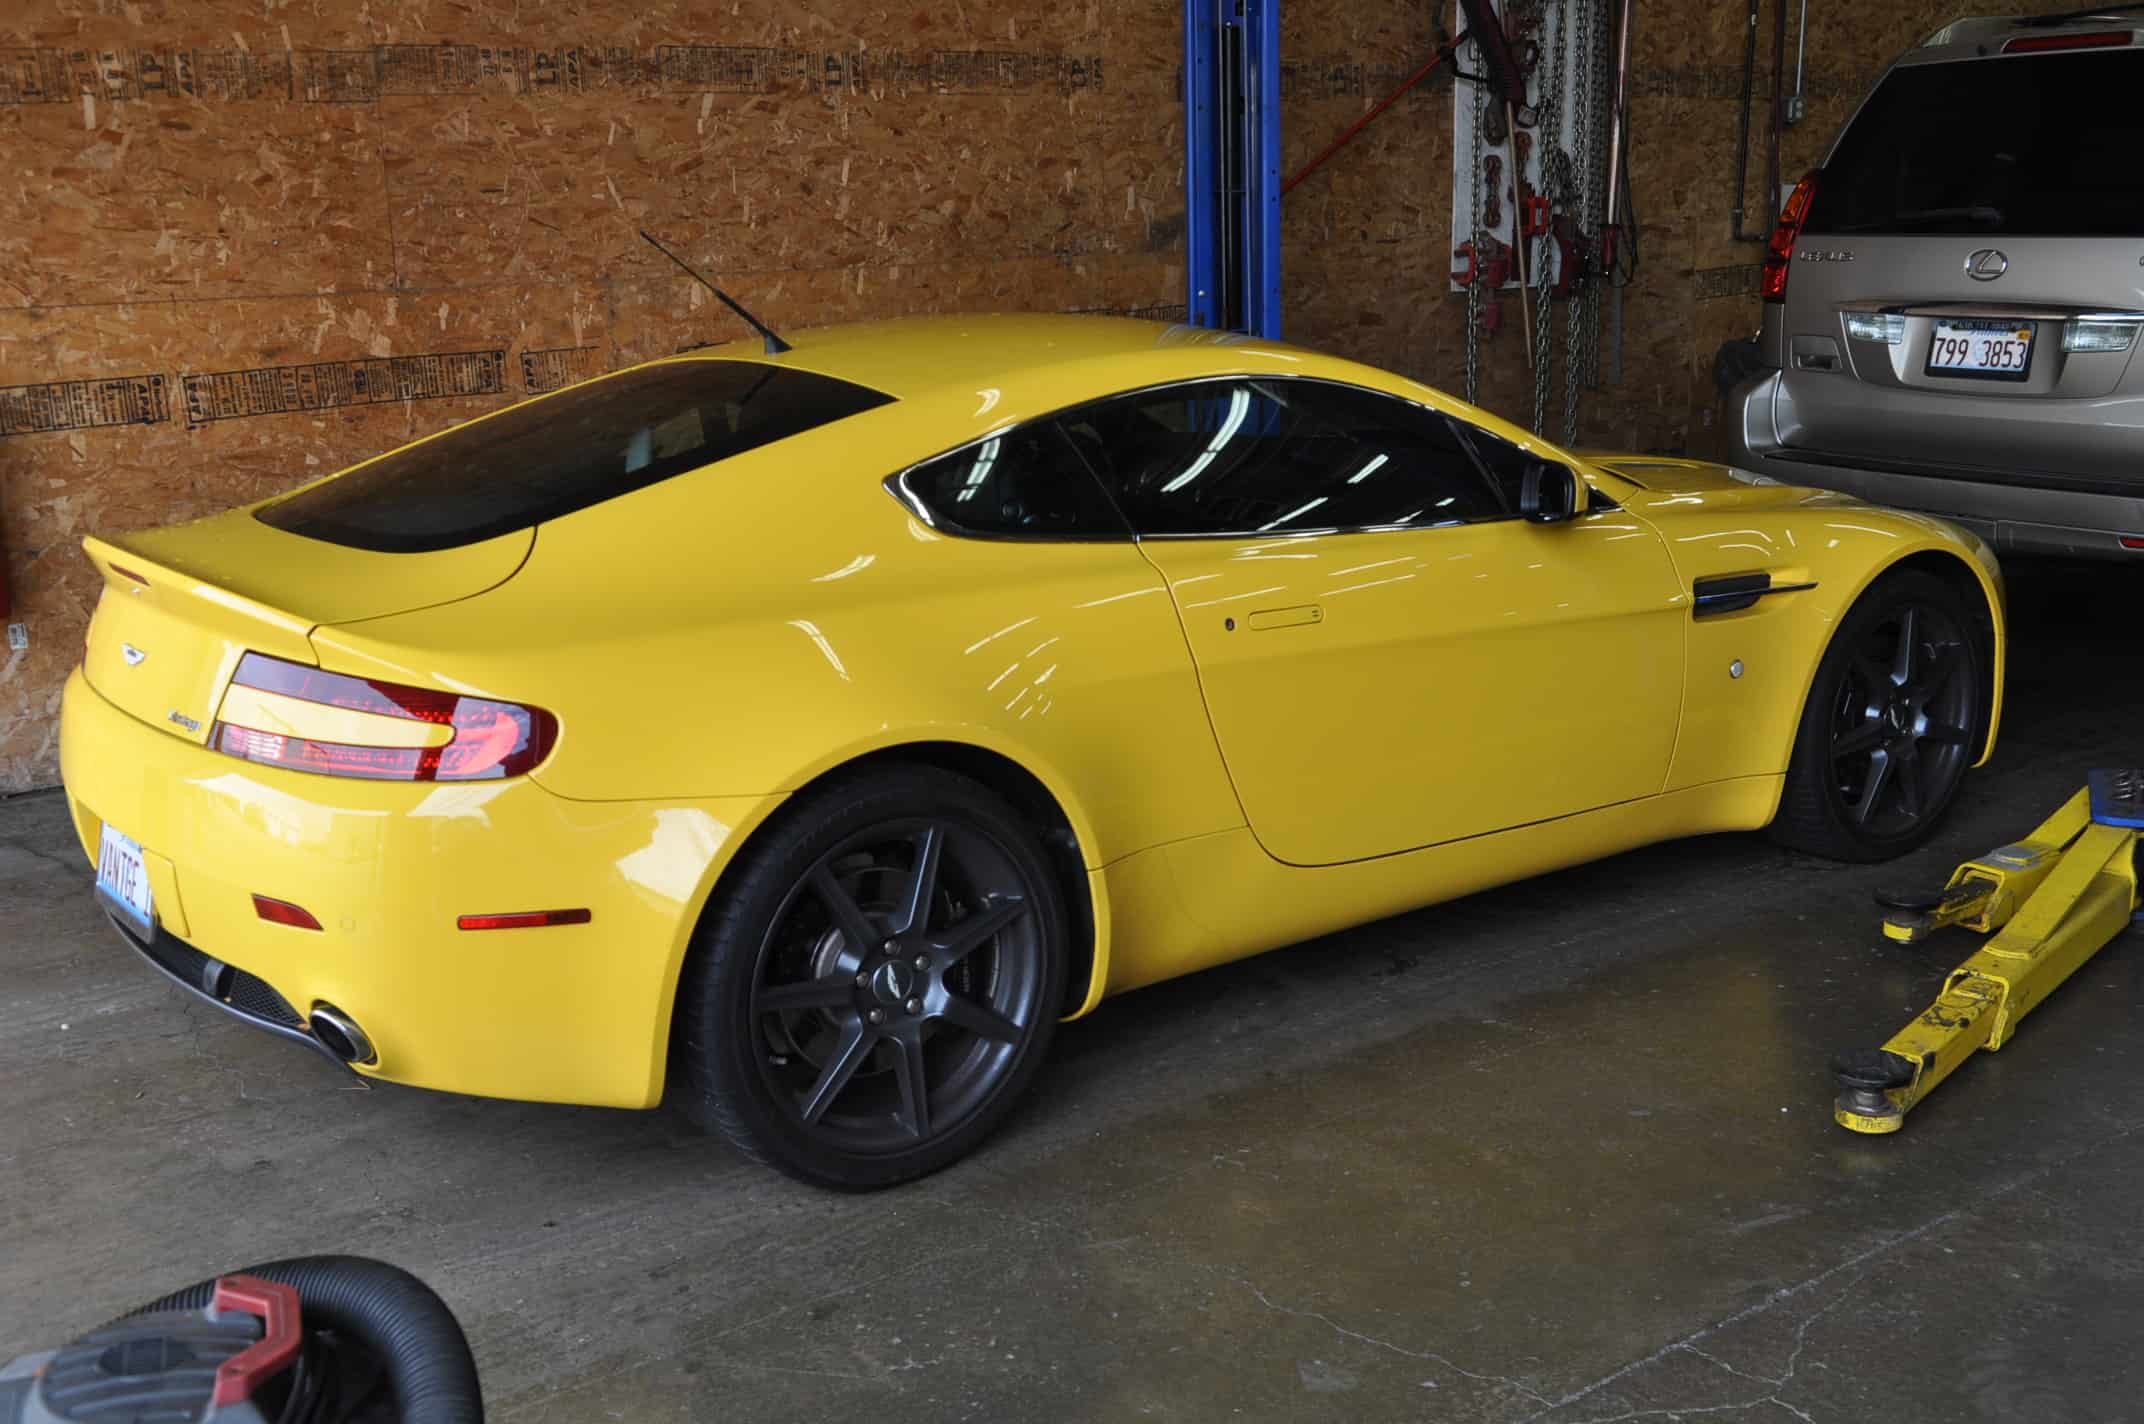 Aston Martin V Vantage Sunburst Yellow Oil Change Fluid Flush - Aston martin vantage maintenance